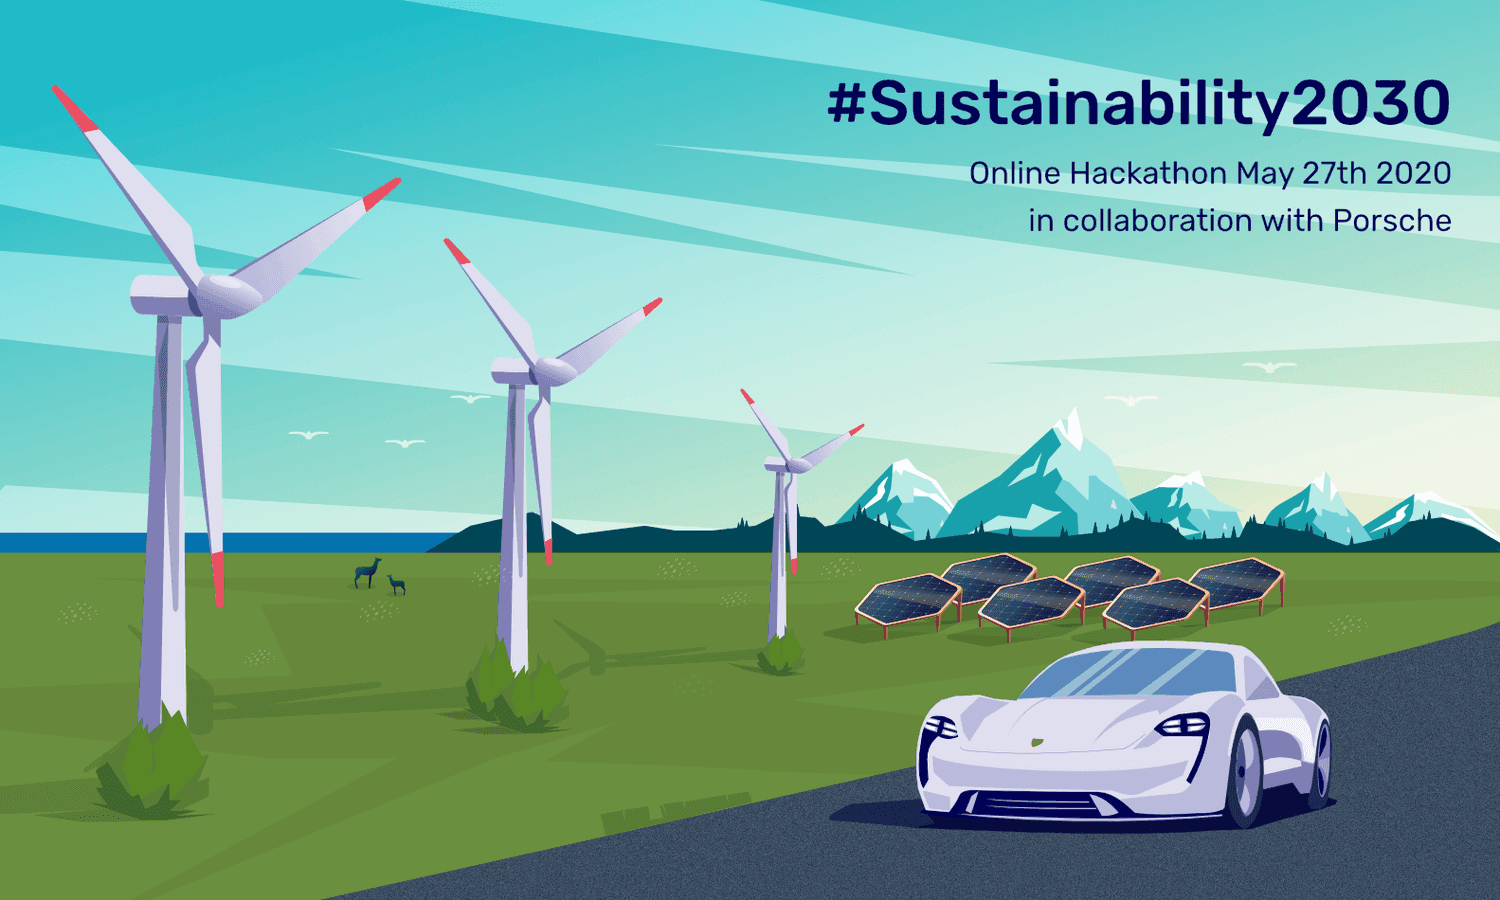 Illustration with wind turbines, mountains, nature and Porsche Taycan